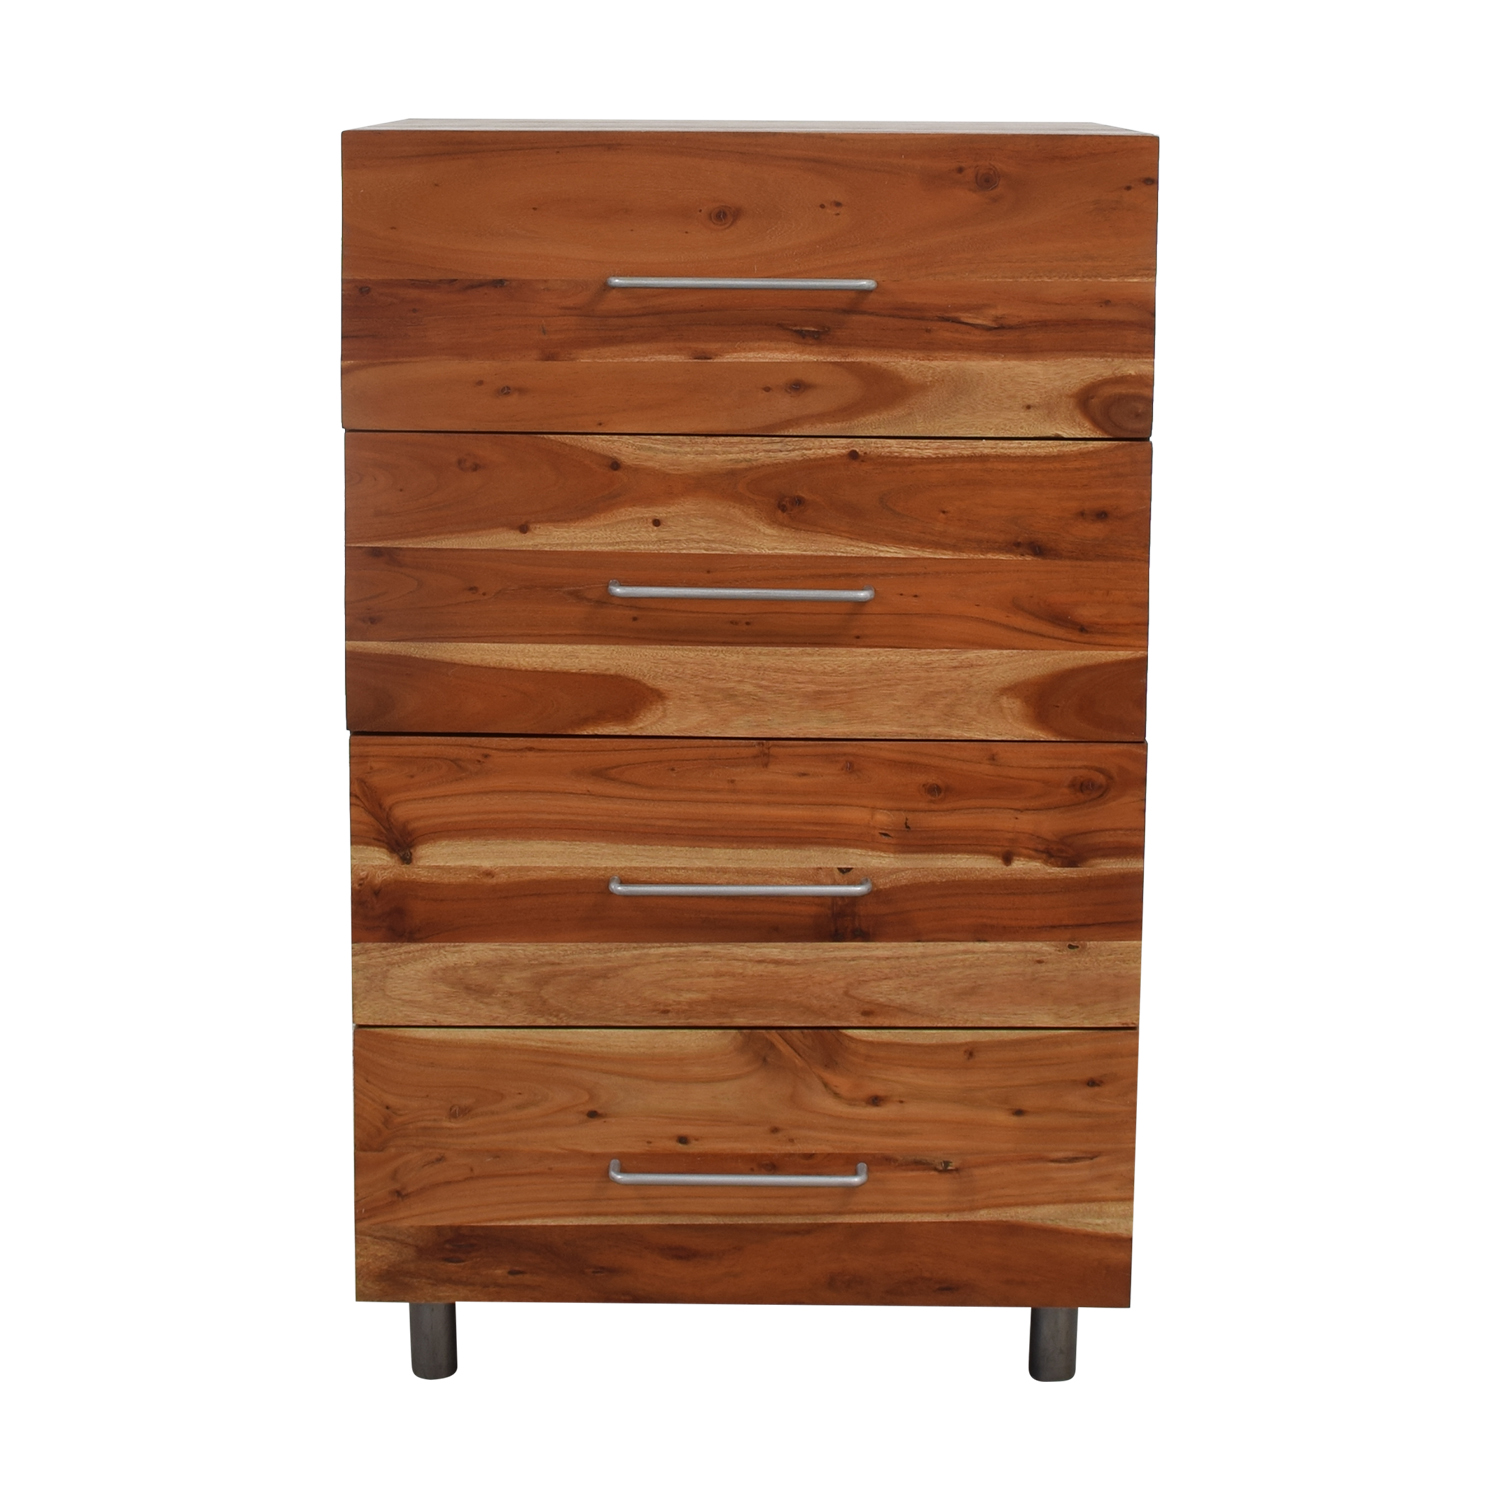 CB2 CB2 Rustic Junction Tall Chest ma